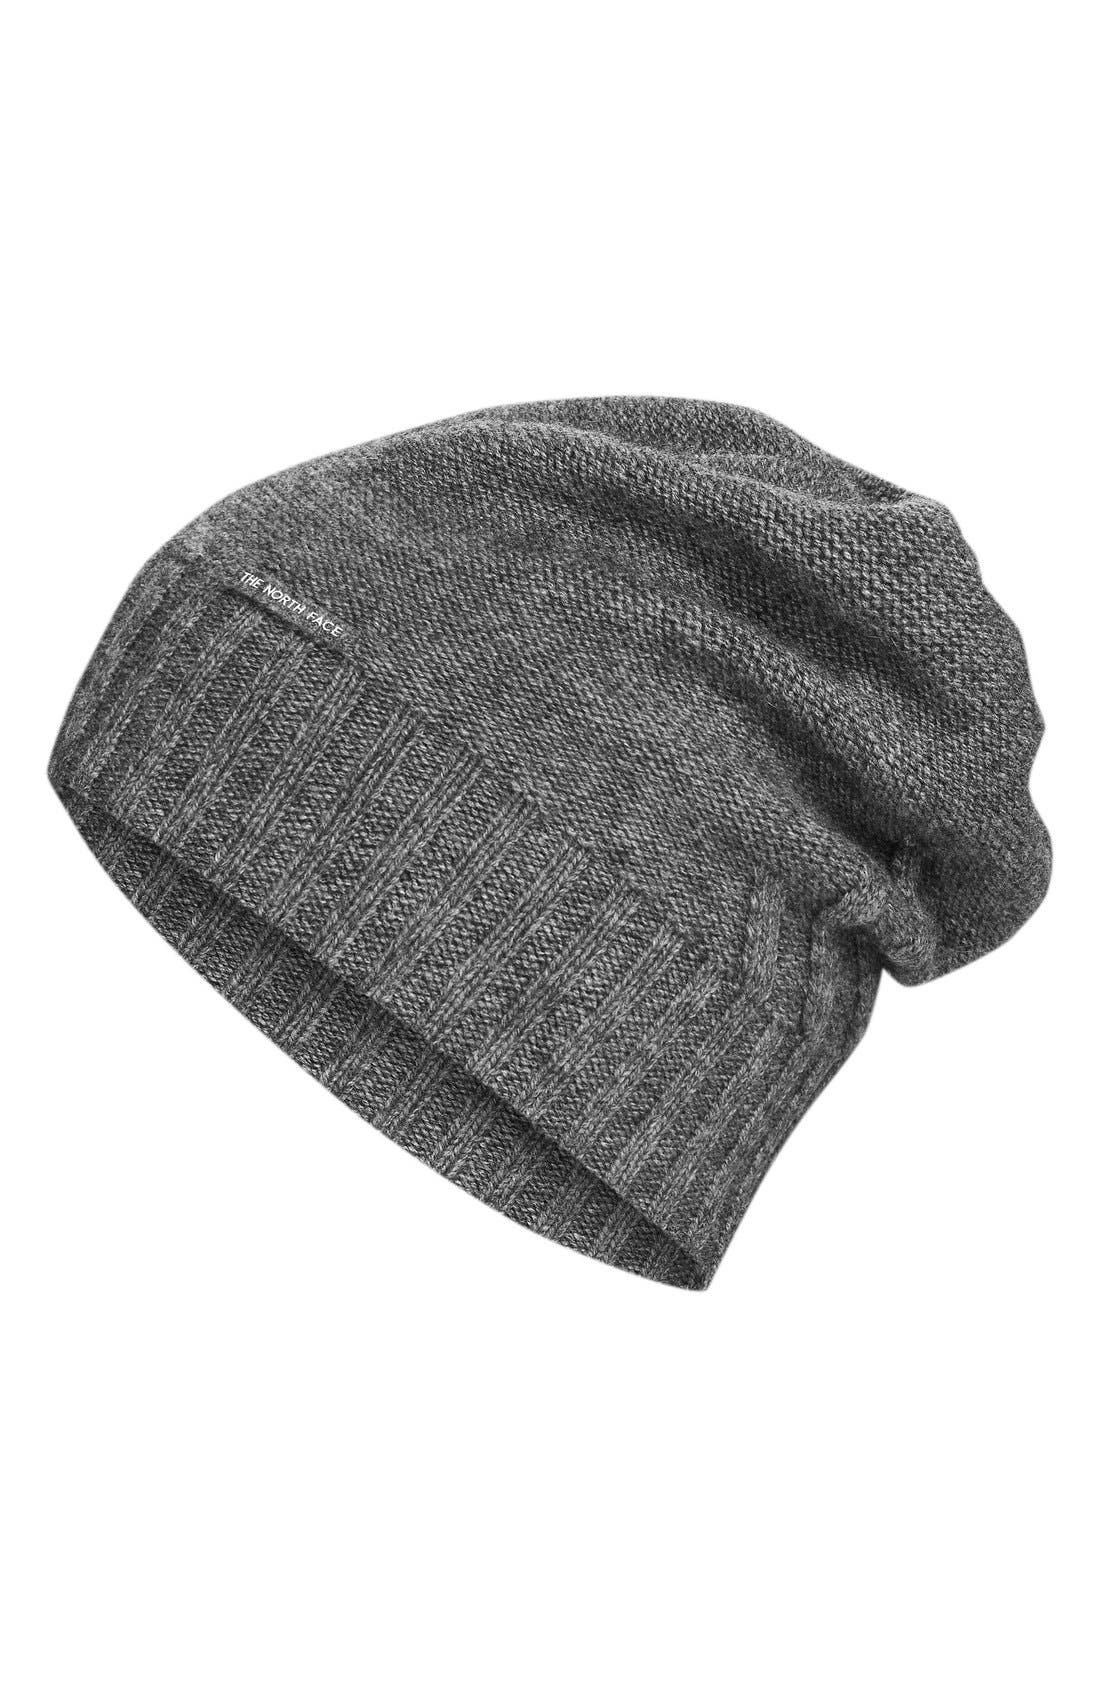 Main Image - The North Face 'Classic' Wool Beanie